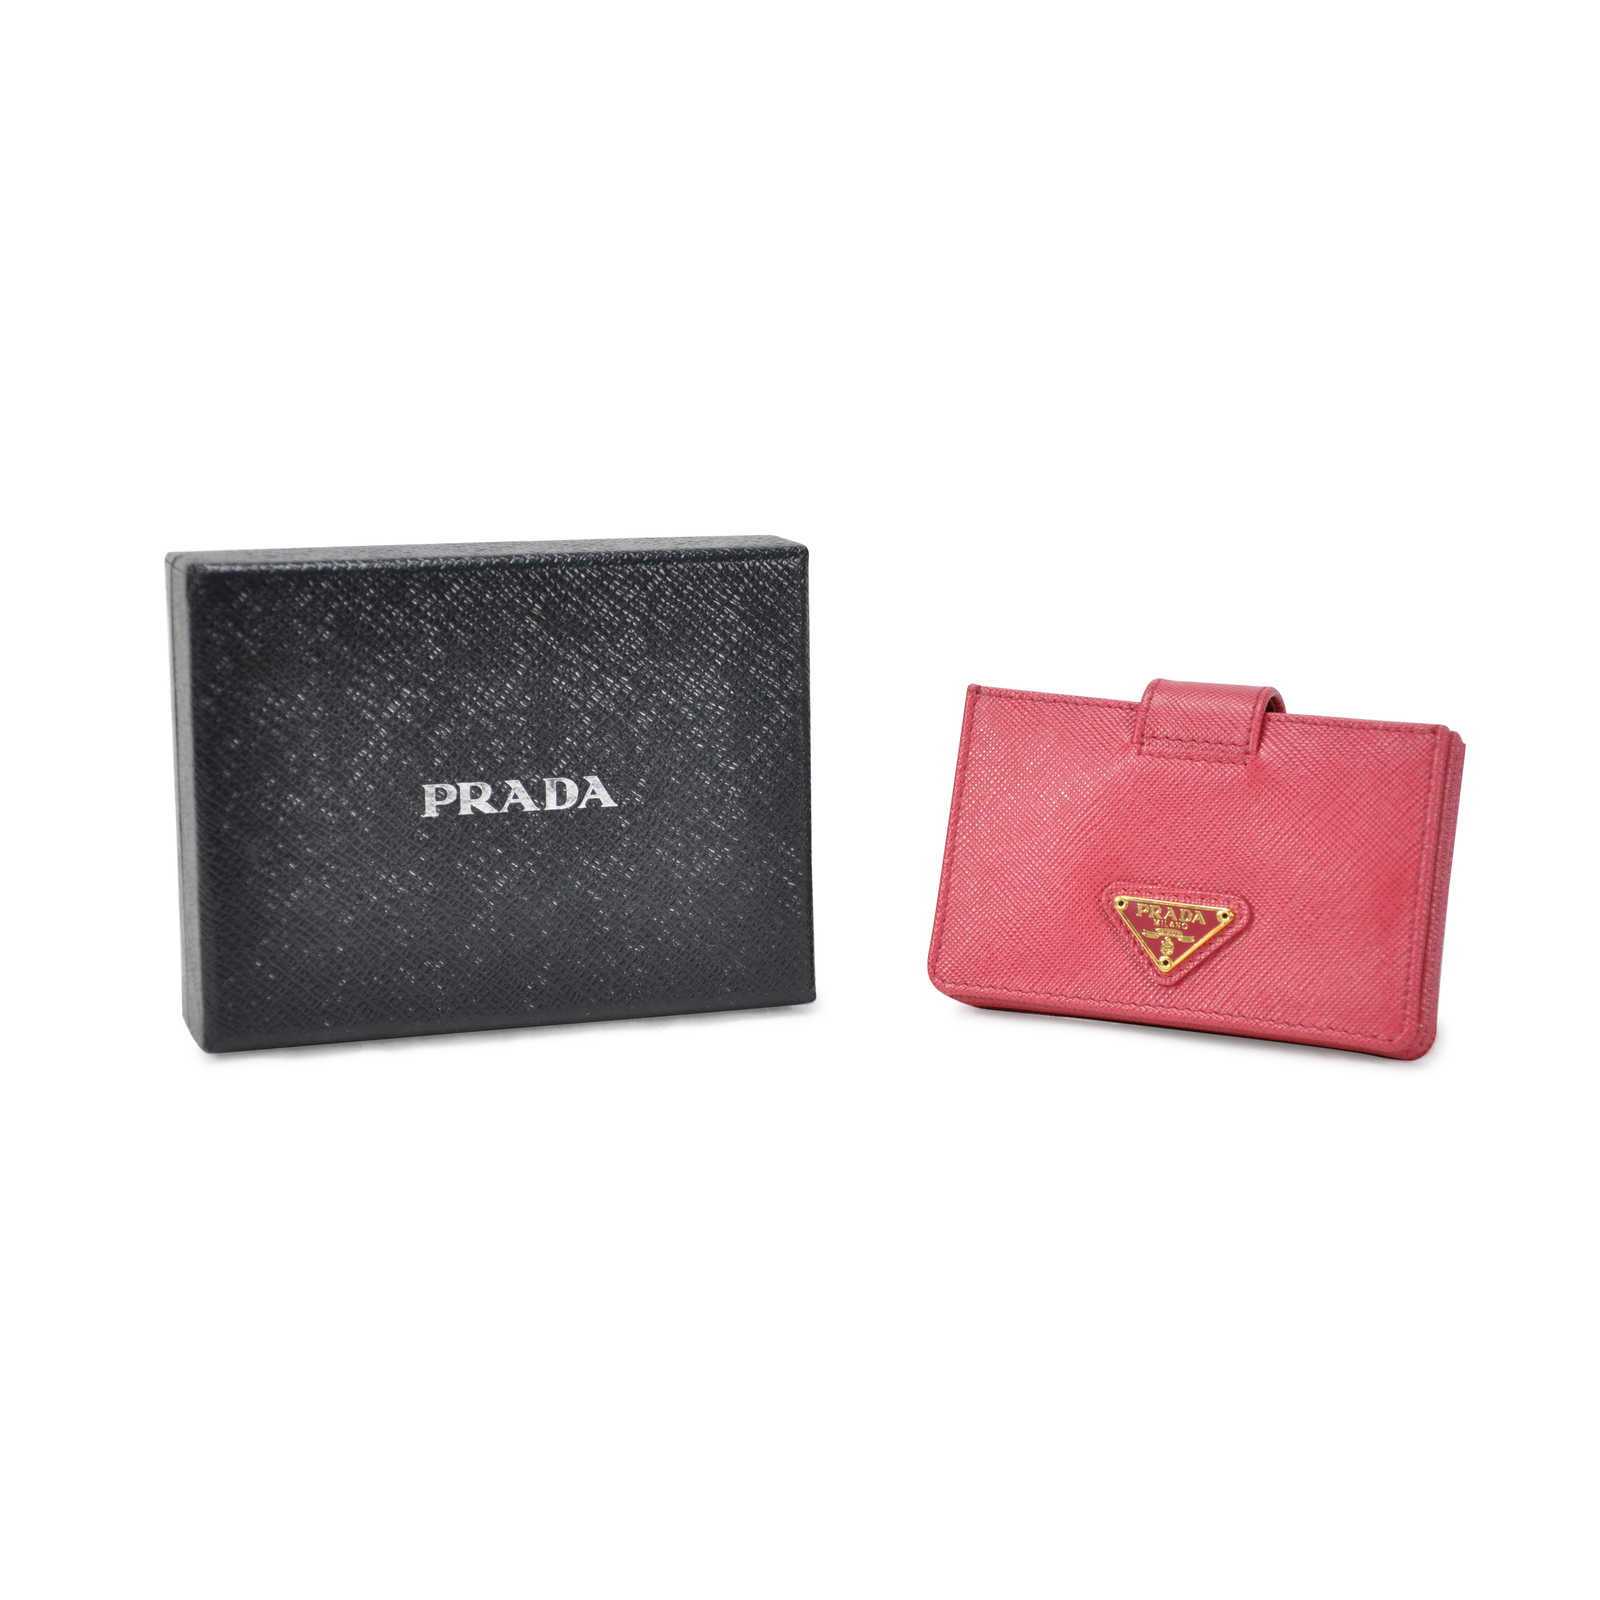 second hand prada business card holder the fifth collection. Black Bedroom Furniture Sets. Home Design Ideas